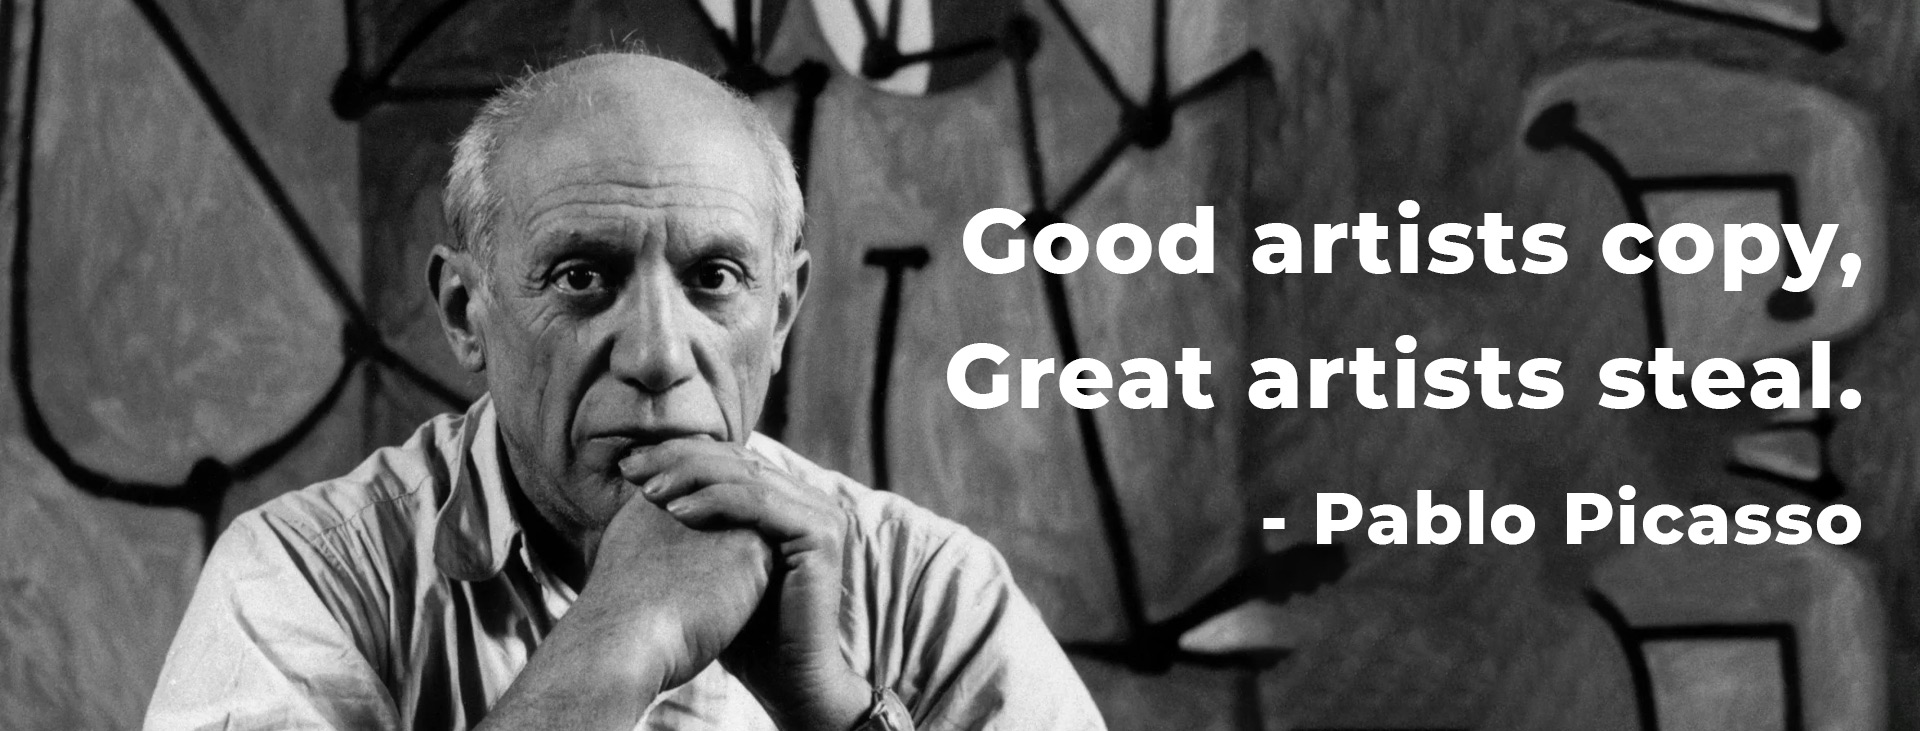 01-Pablo-Picasso-Best-Ad-Creatives-Mobile-Games-Successful-UA-Campaigns